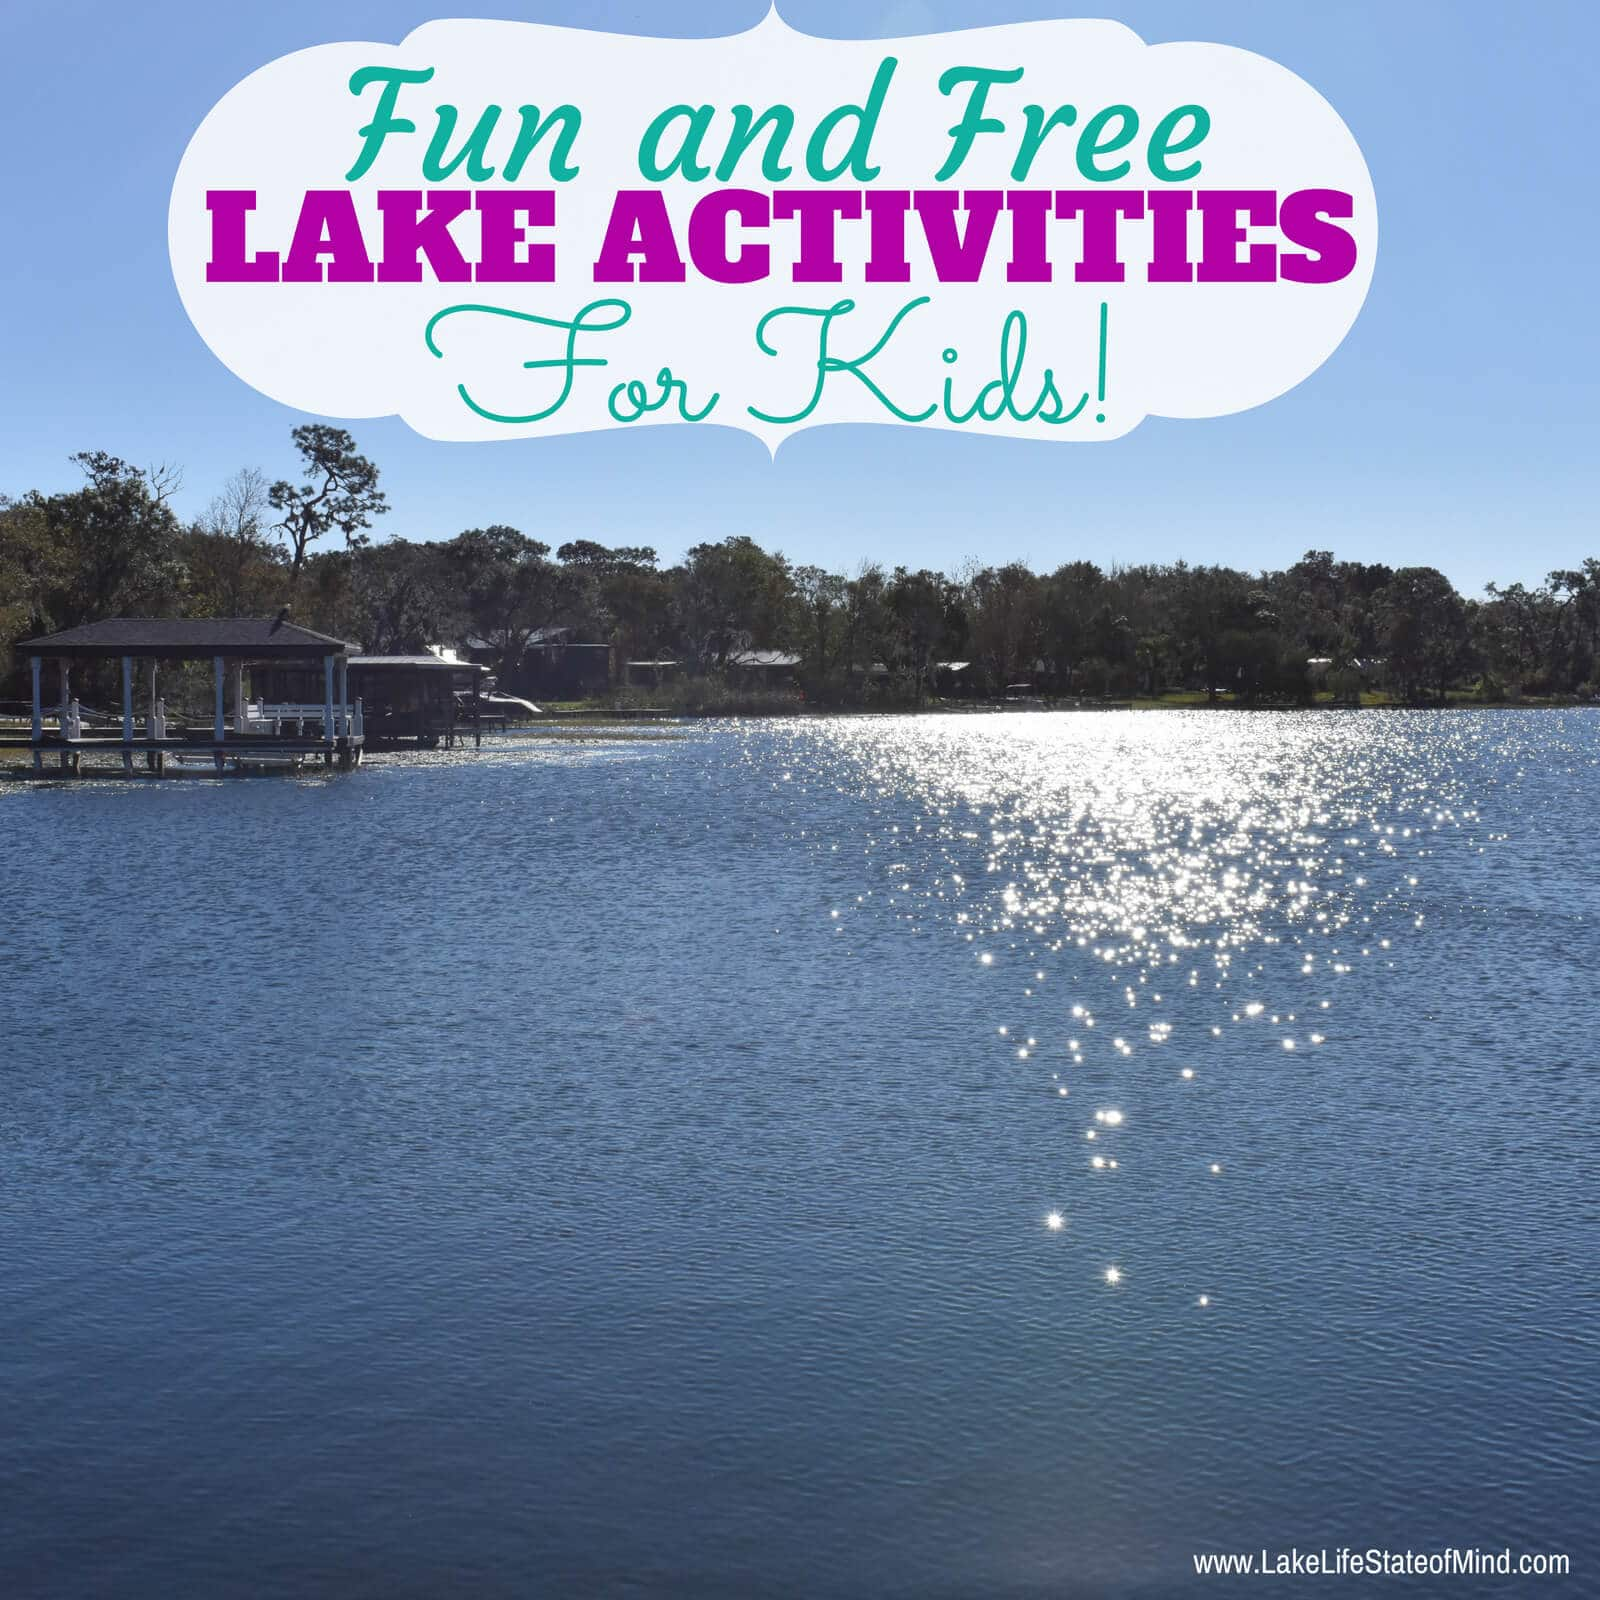 Fun and Free Activities For Kids at the Lake House